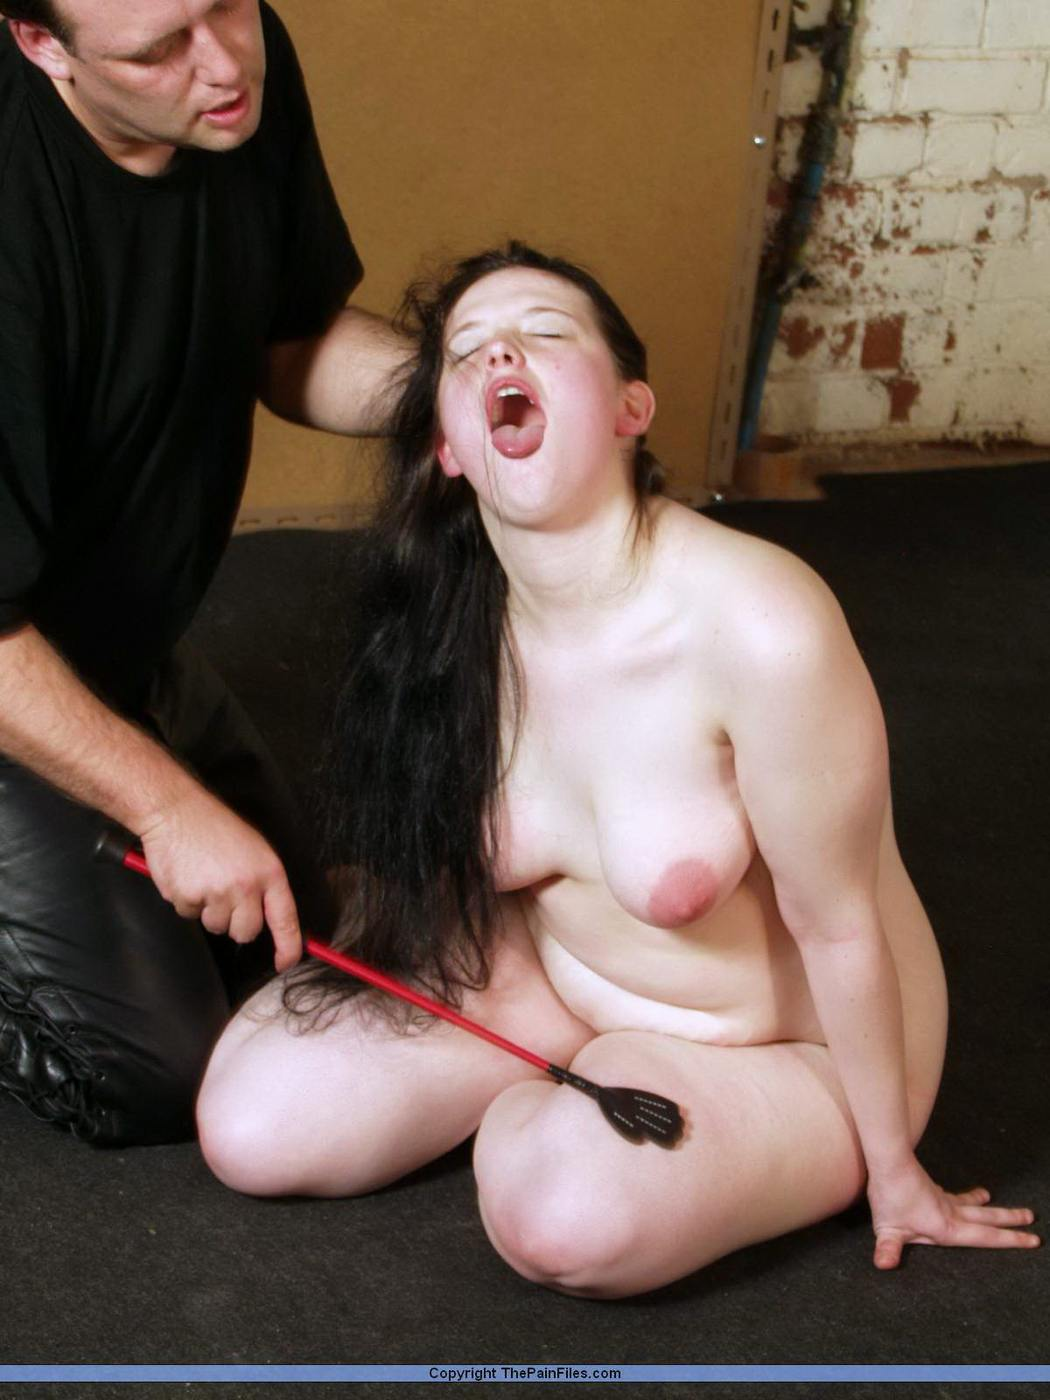 Merlin recommend best of spanking humiliation shame